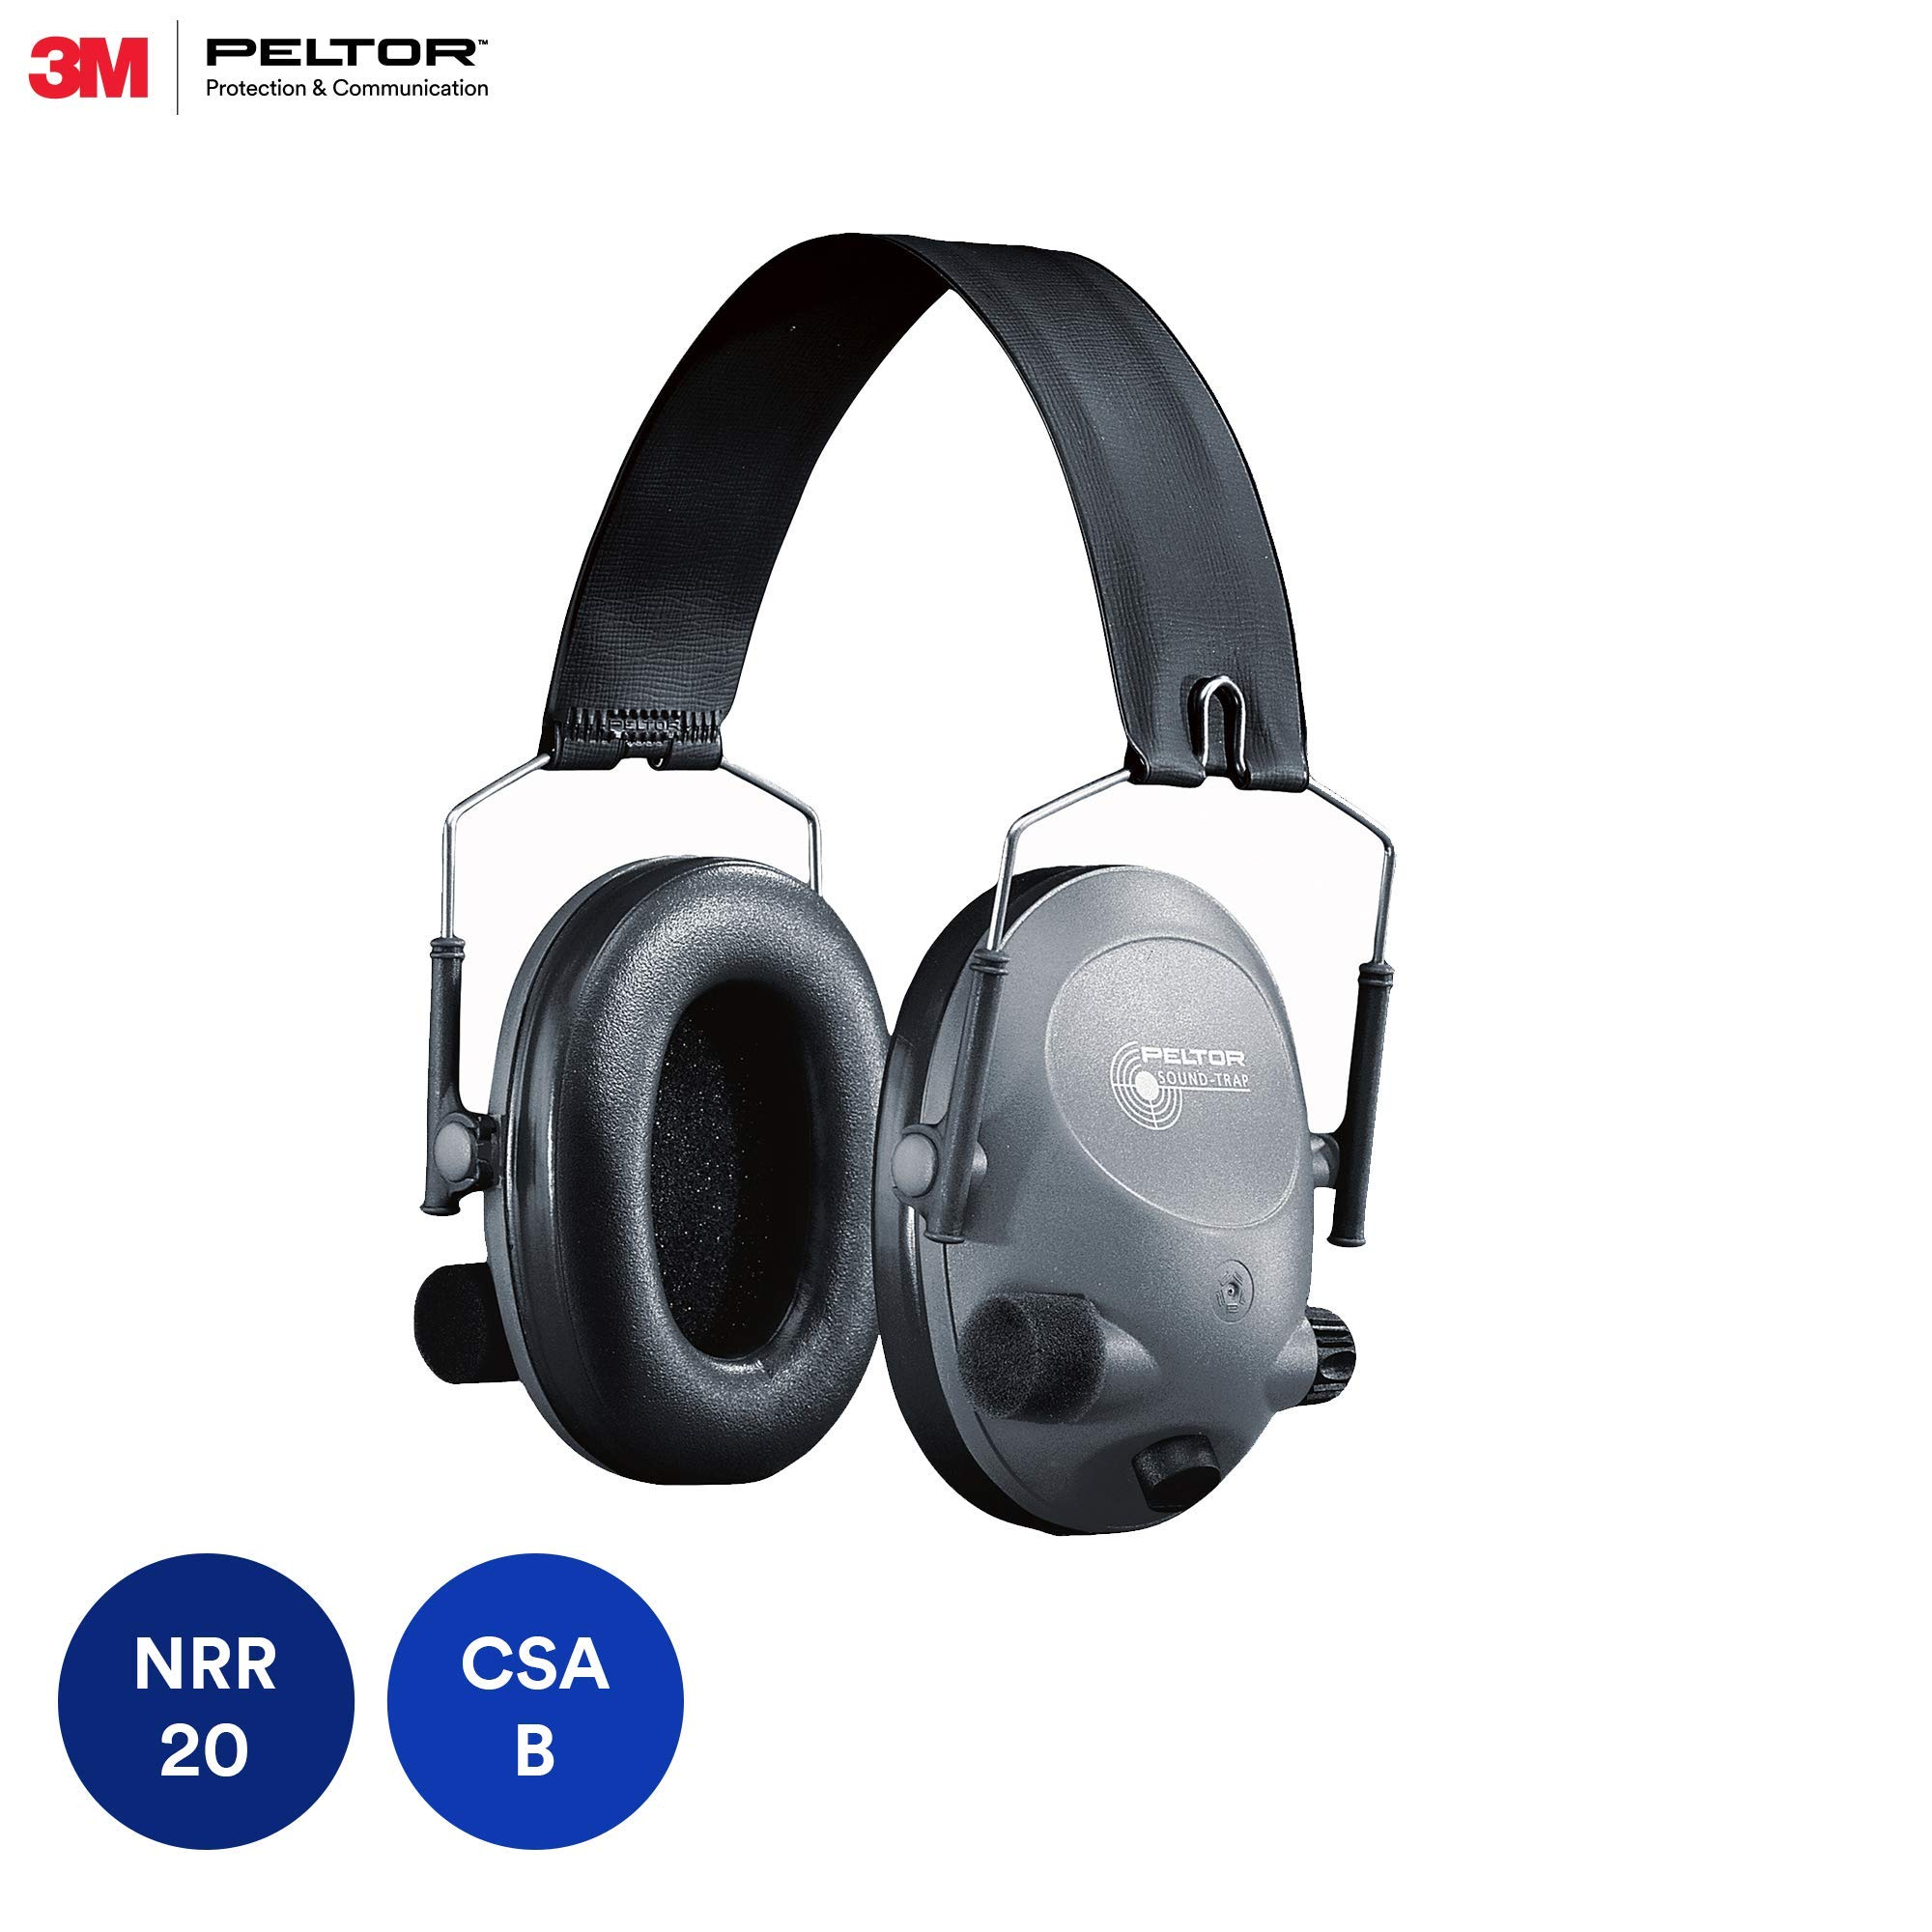 3M Peltor Tactical 6-S Slim Line Electronic Headset, Hearing Protection, Gray, Ear Protection, NRR 19 dB, Great for hunters and shooters by 3M